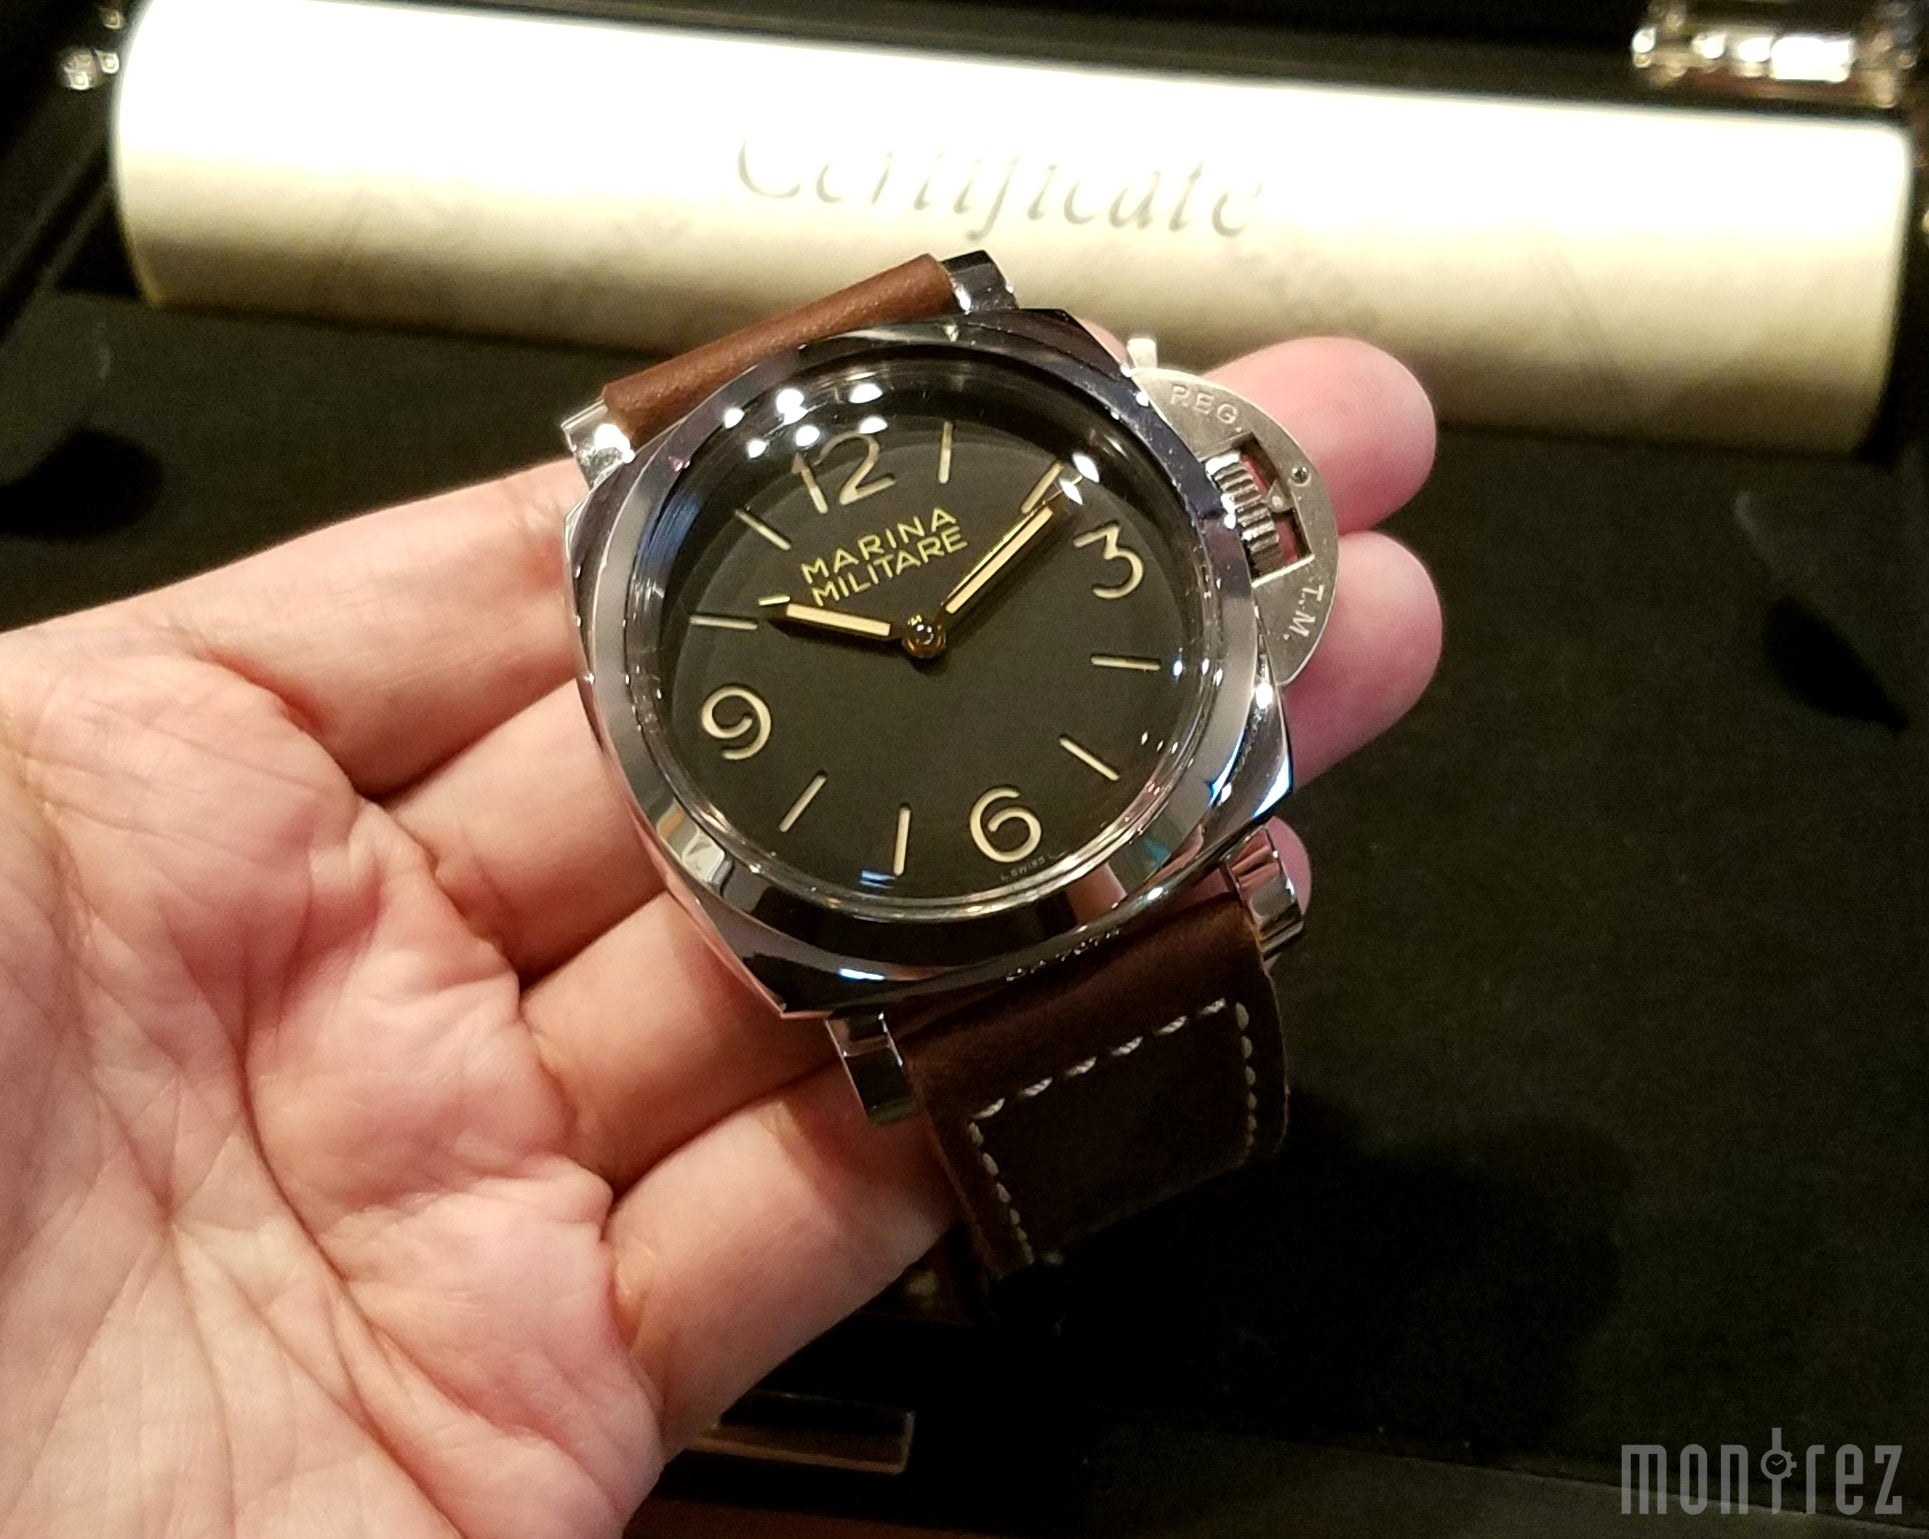 Panerai Luminor 1950 Marina Militare 3 Days Acciaio 47mm PAM00673 (Special Edition)